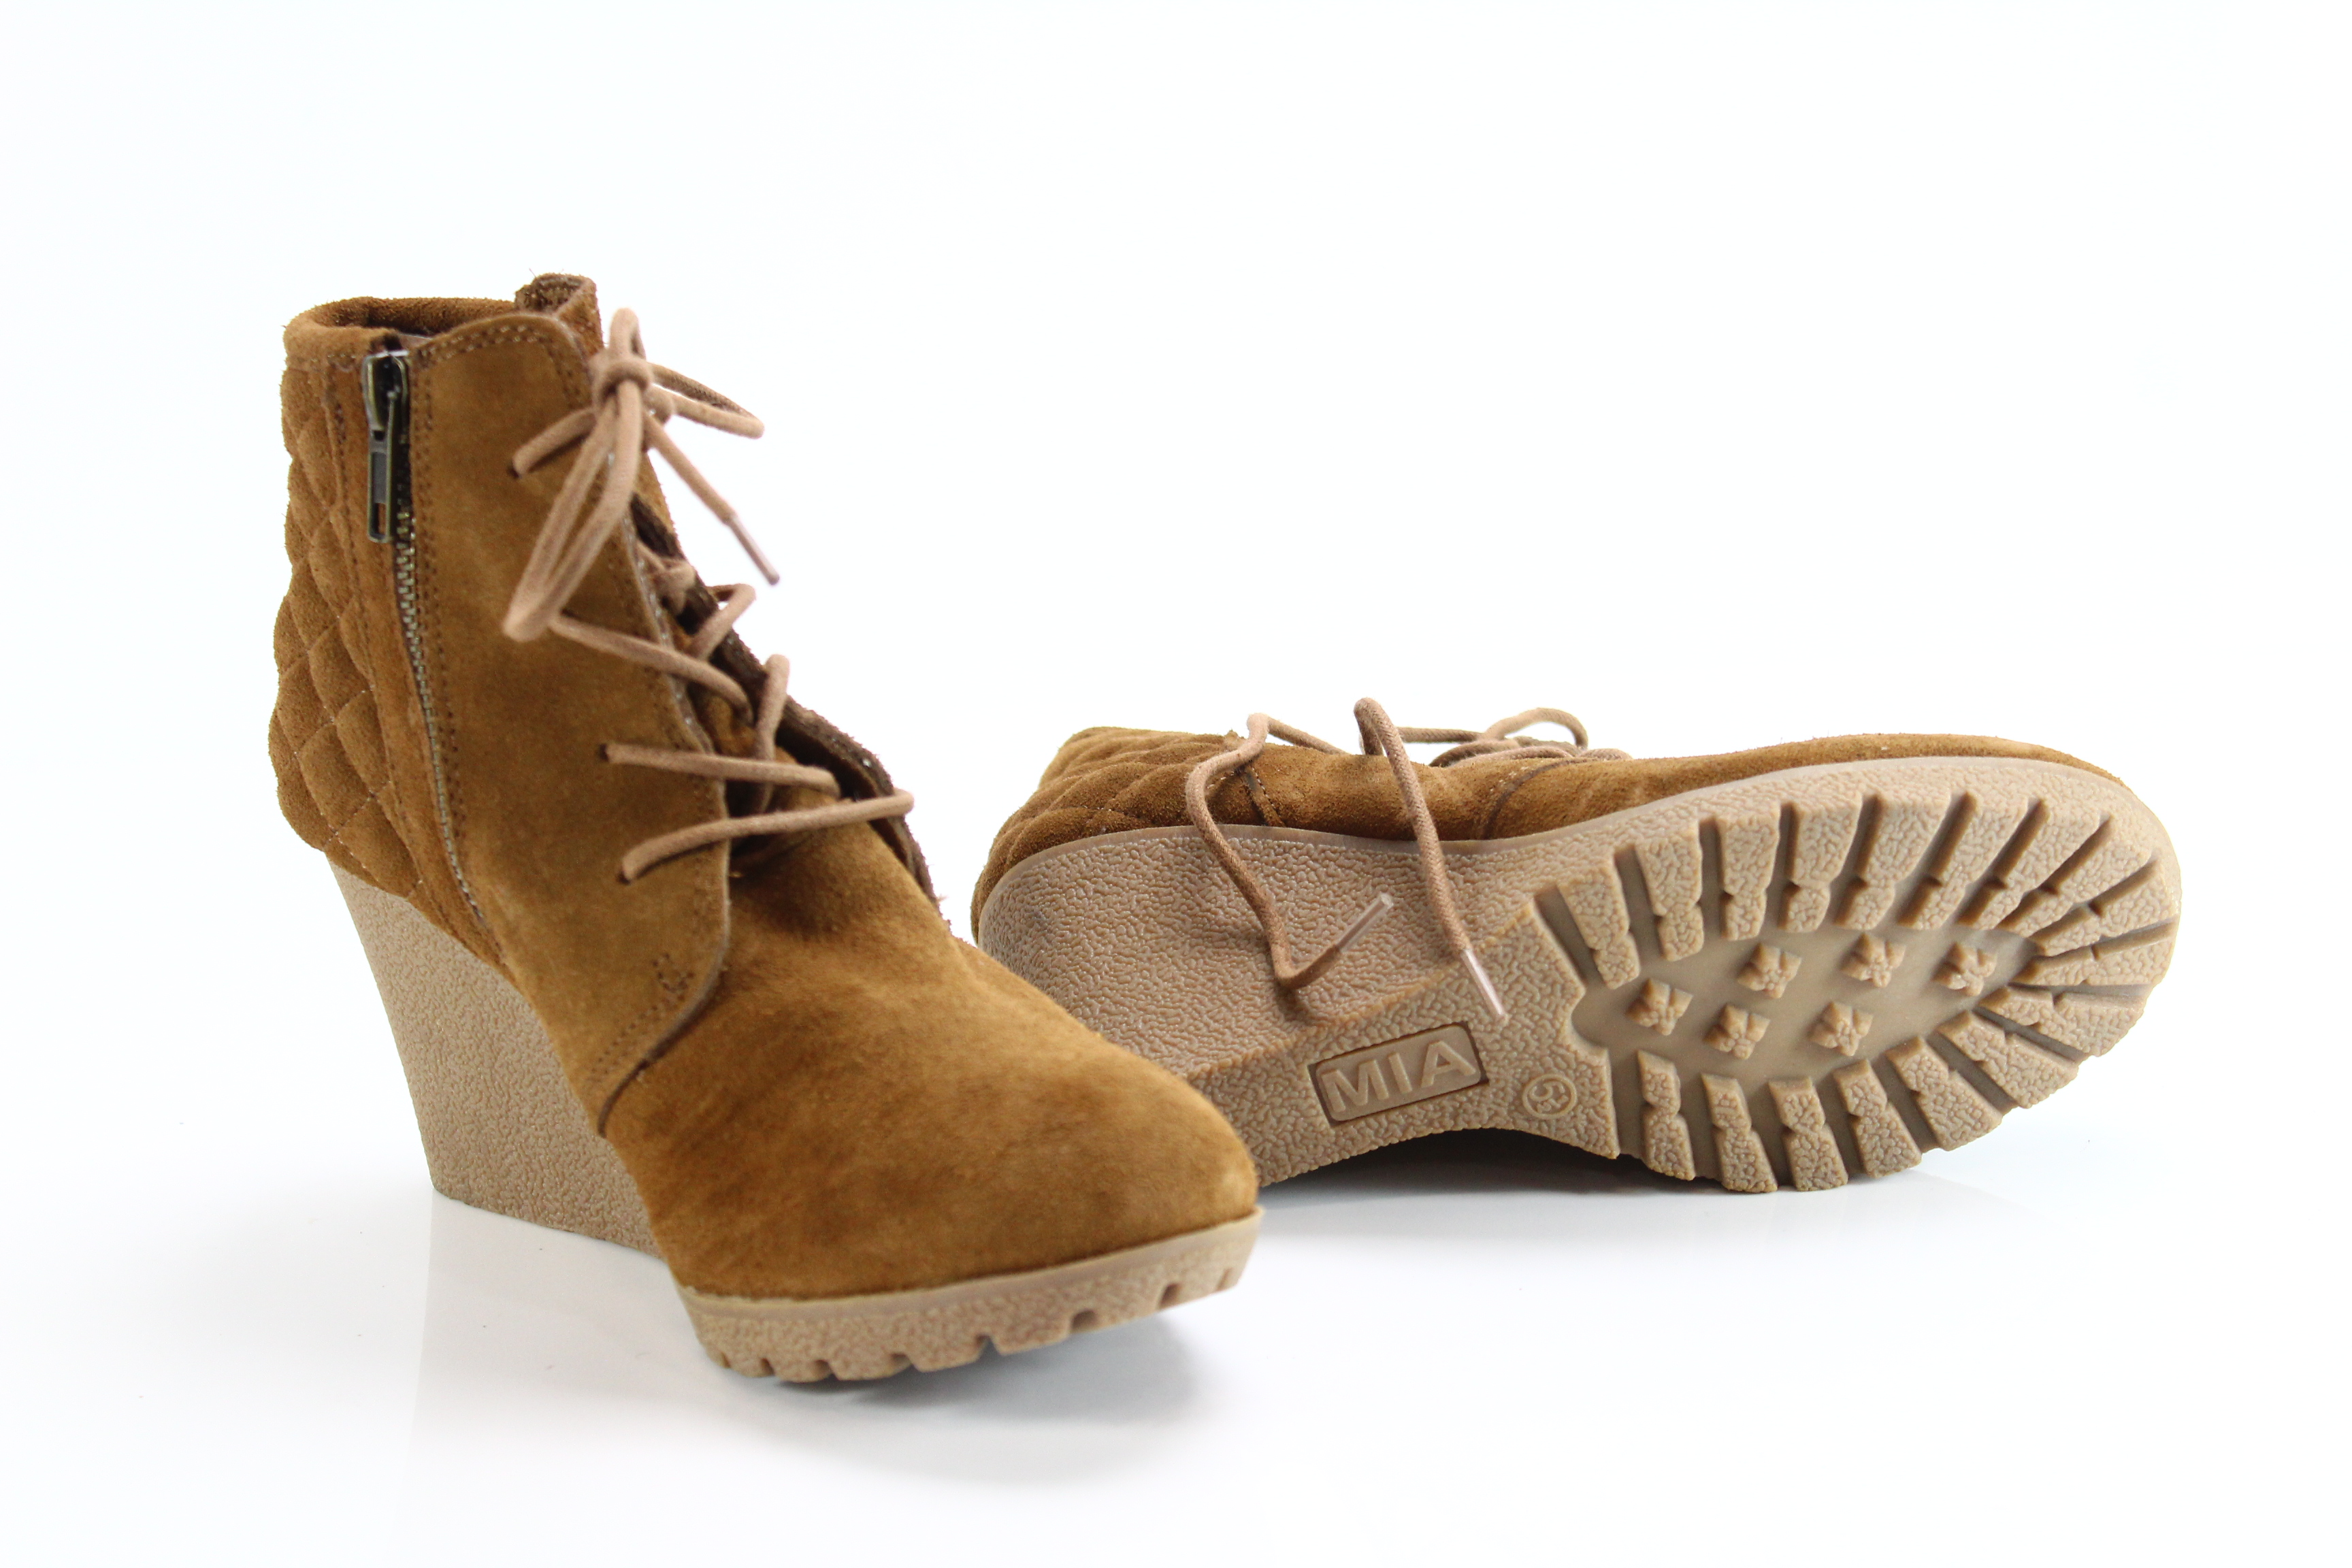 e8a1855b71d MIA NEW Brown Women s Size 5.5M High Heel Wedge Lace Up Booties Suede  69-   269